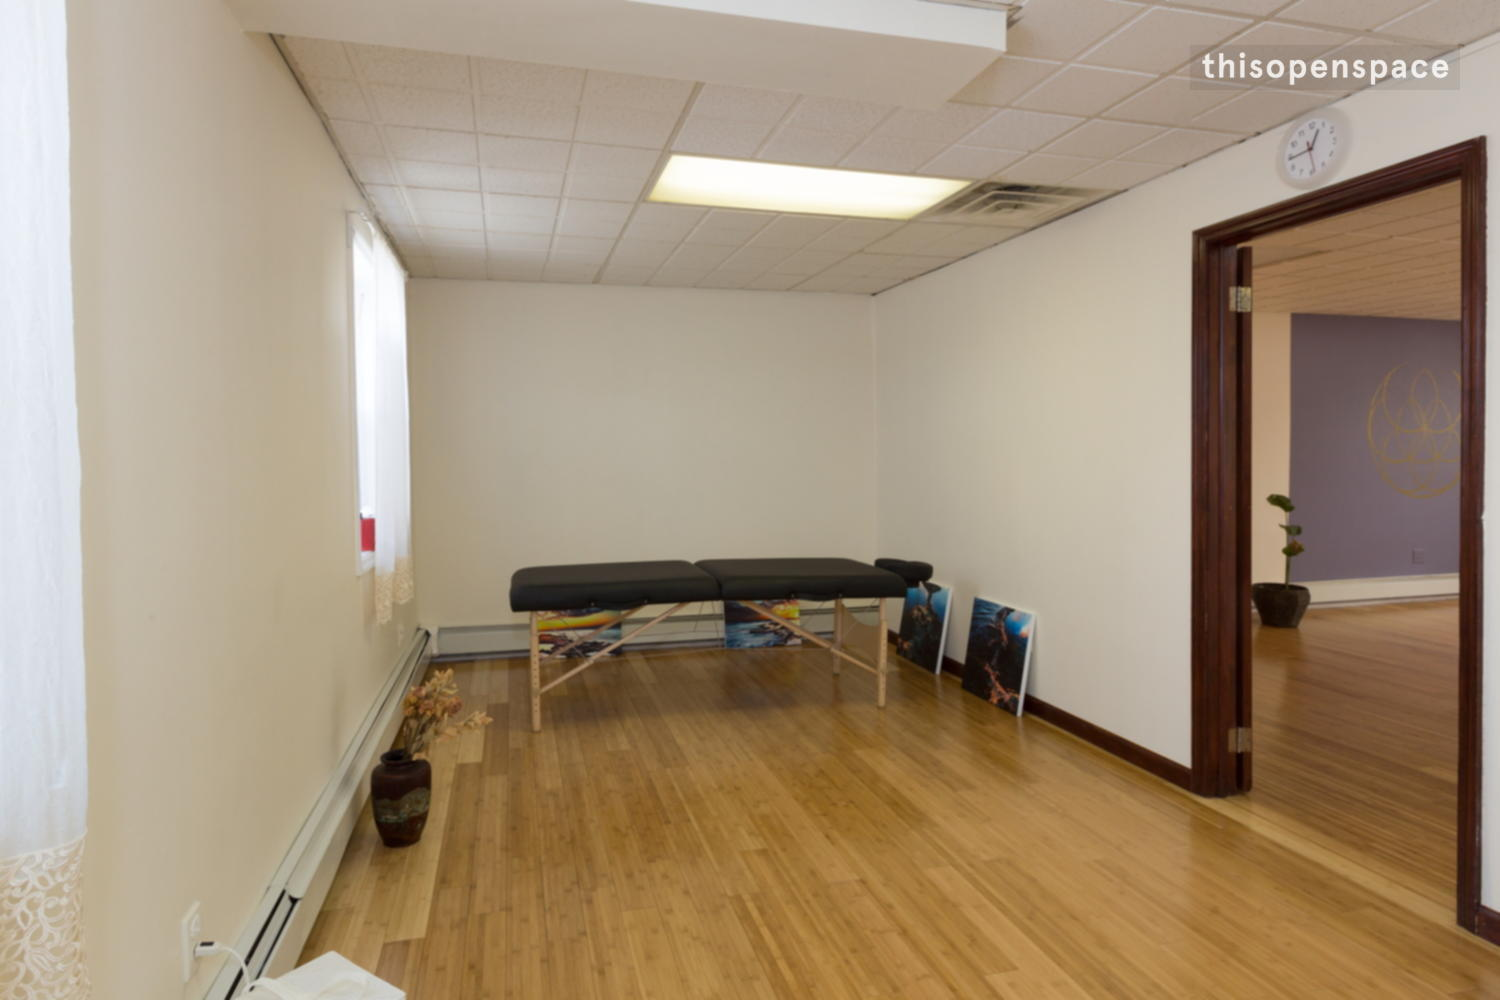 Thisopenspace Big Sunny Yoga Studio With Separate Room